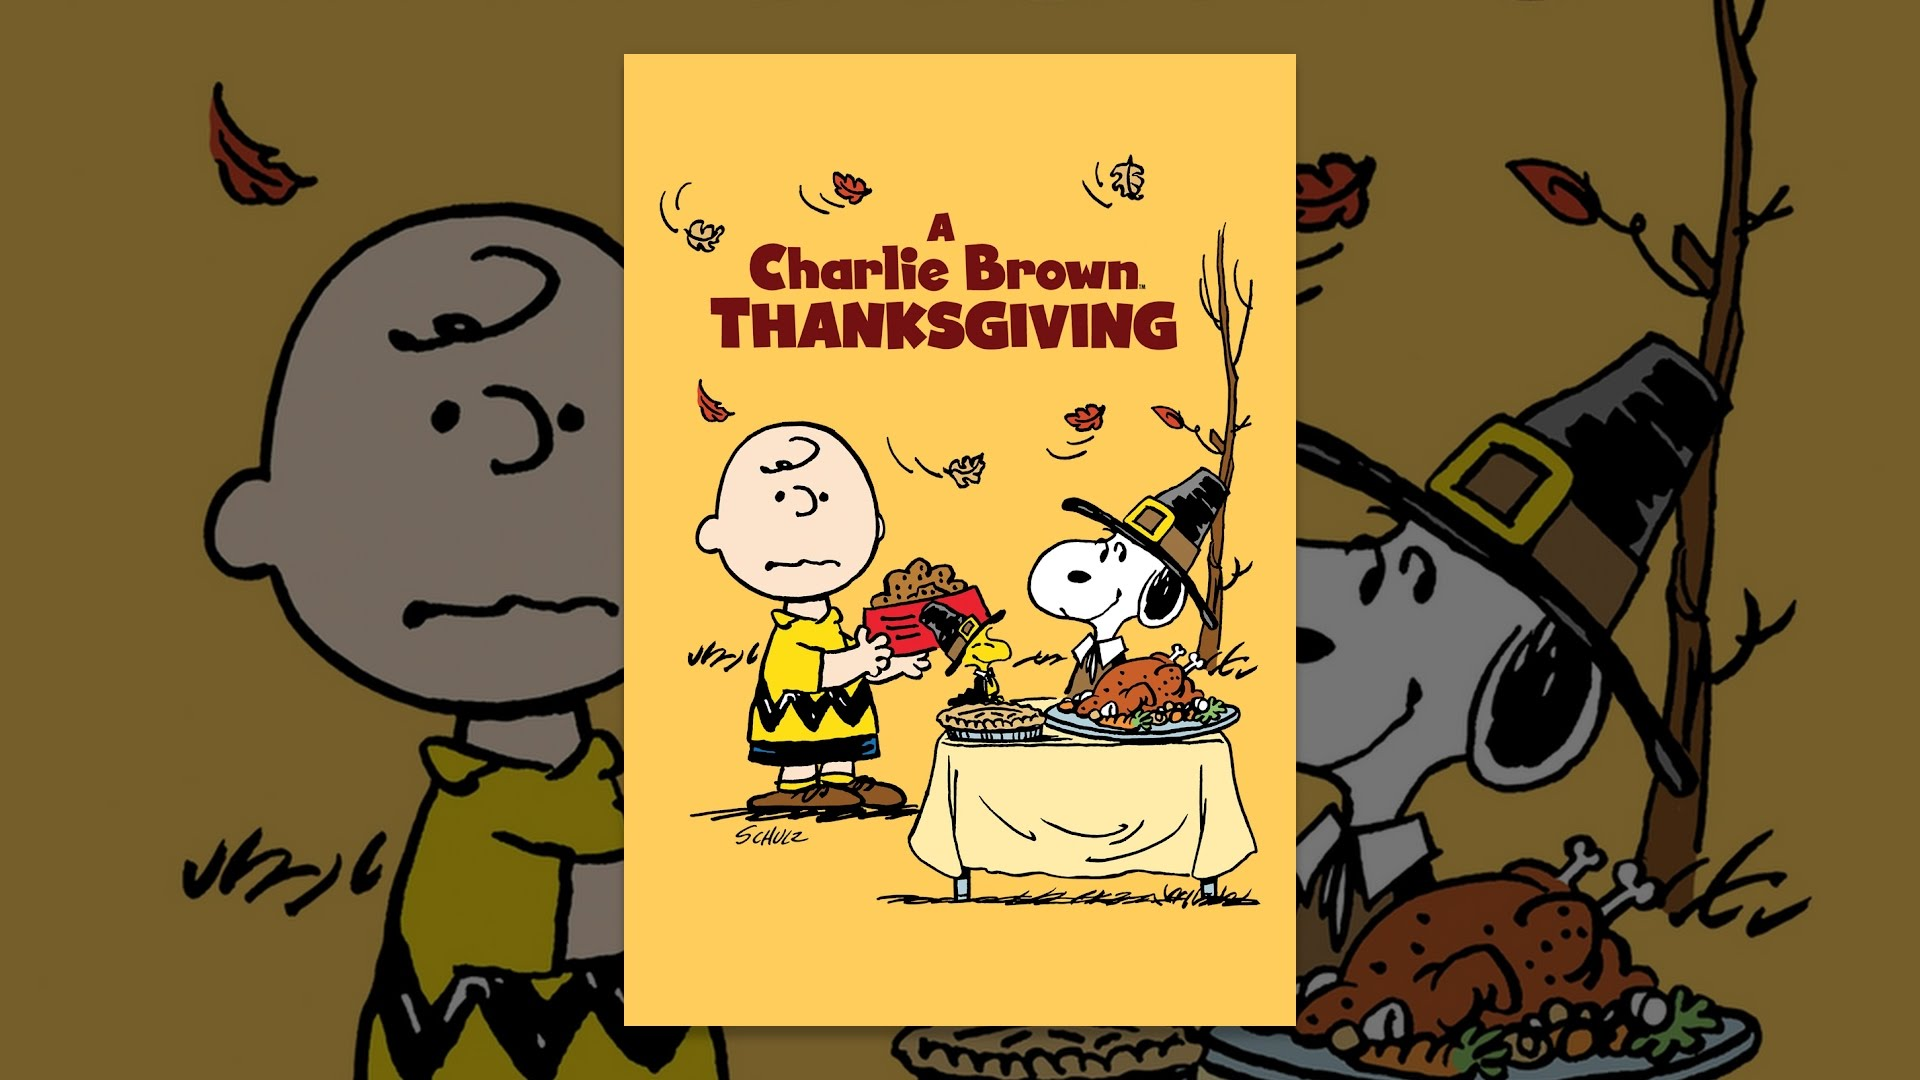 [VIDEO] - A Charlie Brown Thanksgiving (Deluxe Edition) 2